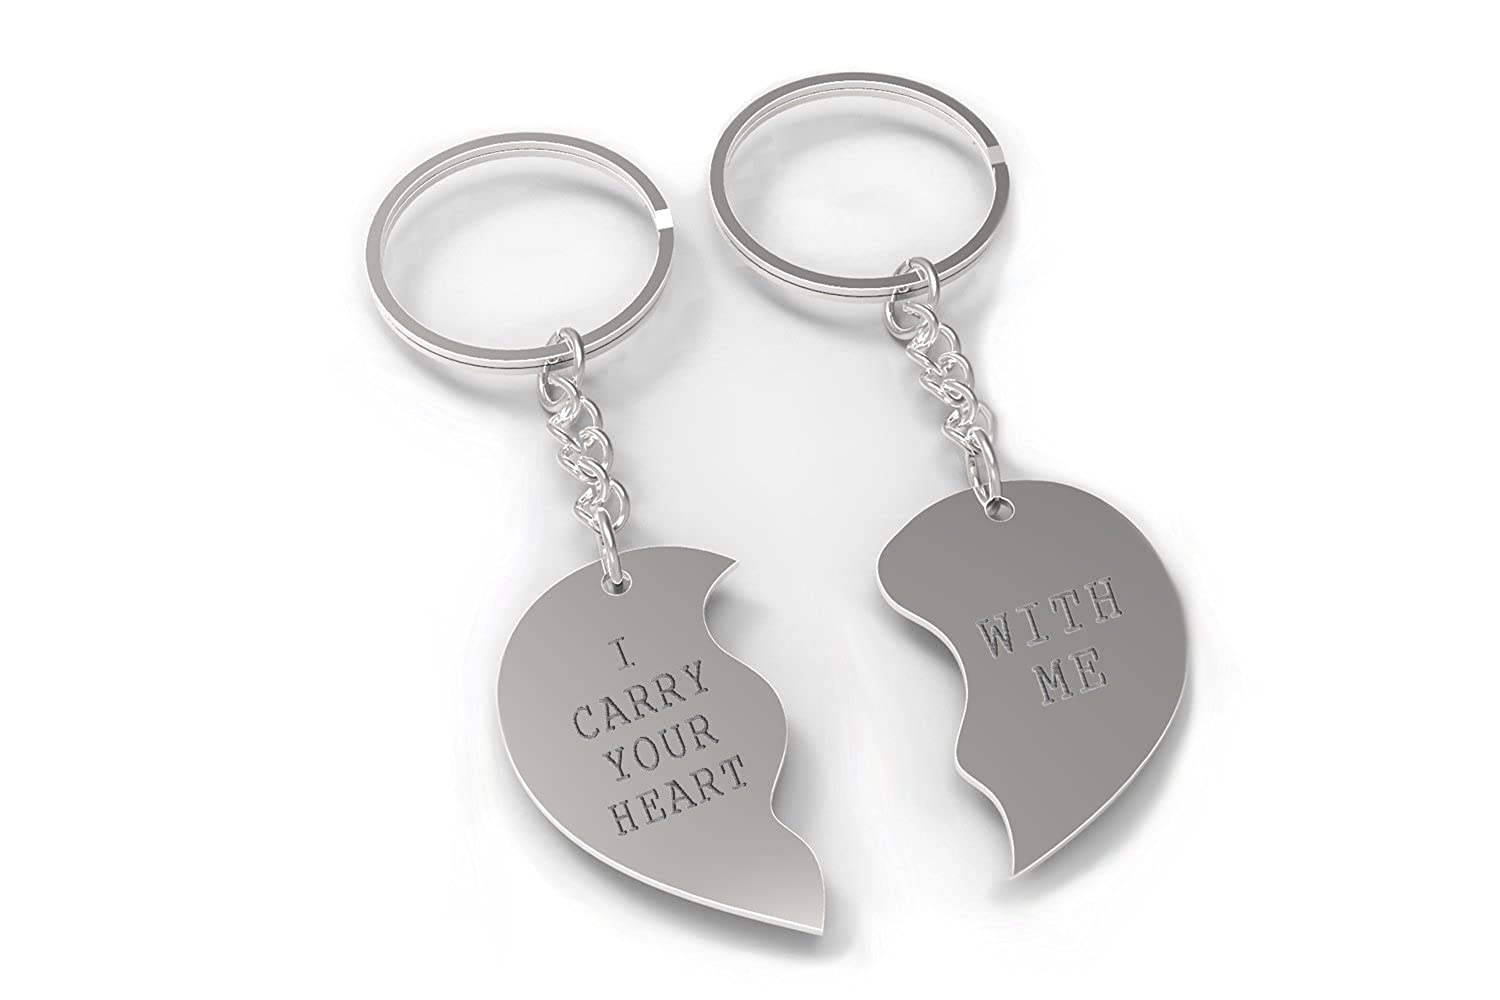 cc9fd50f1723b I Carry Your Heart With Me Half Hearts Couple Keychains Cute Matching Key  Ring